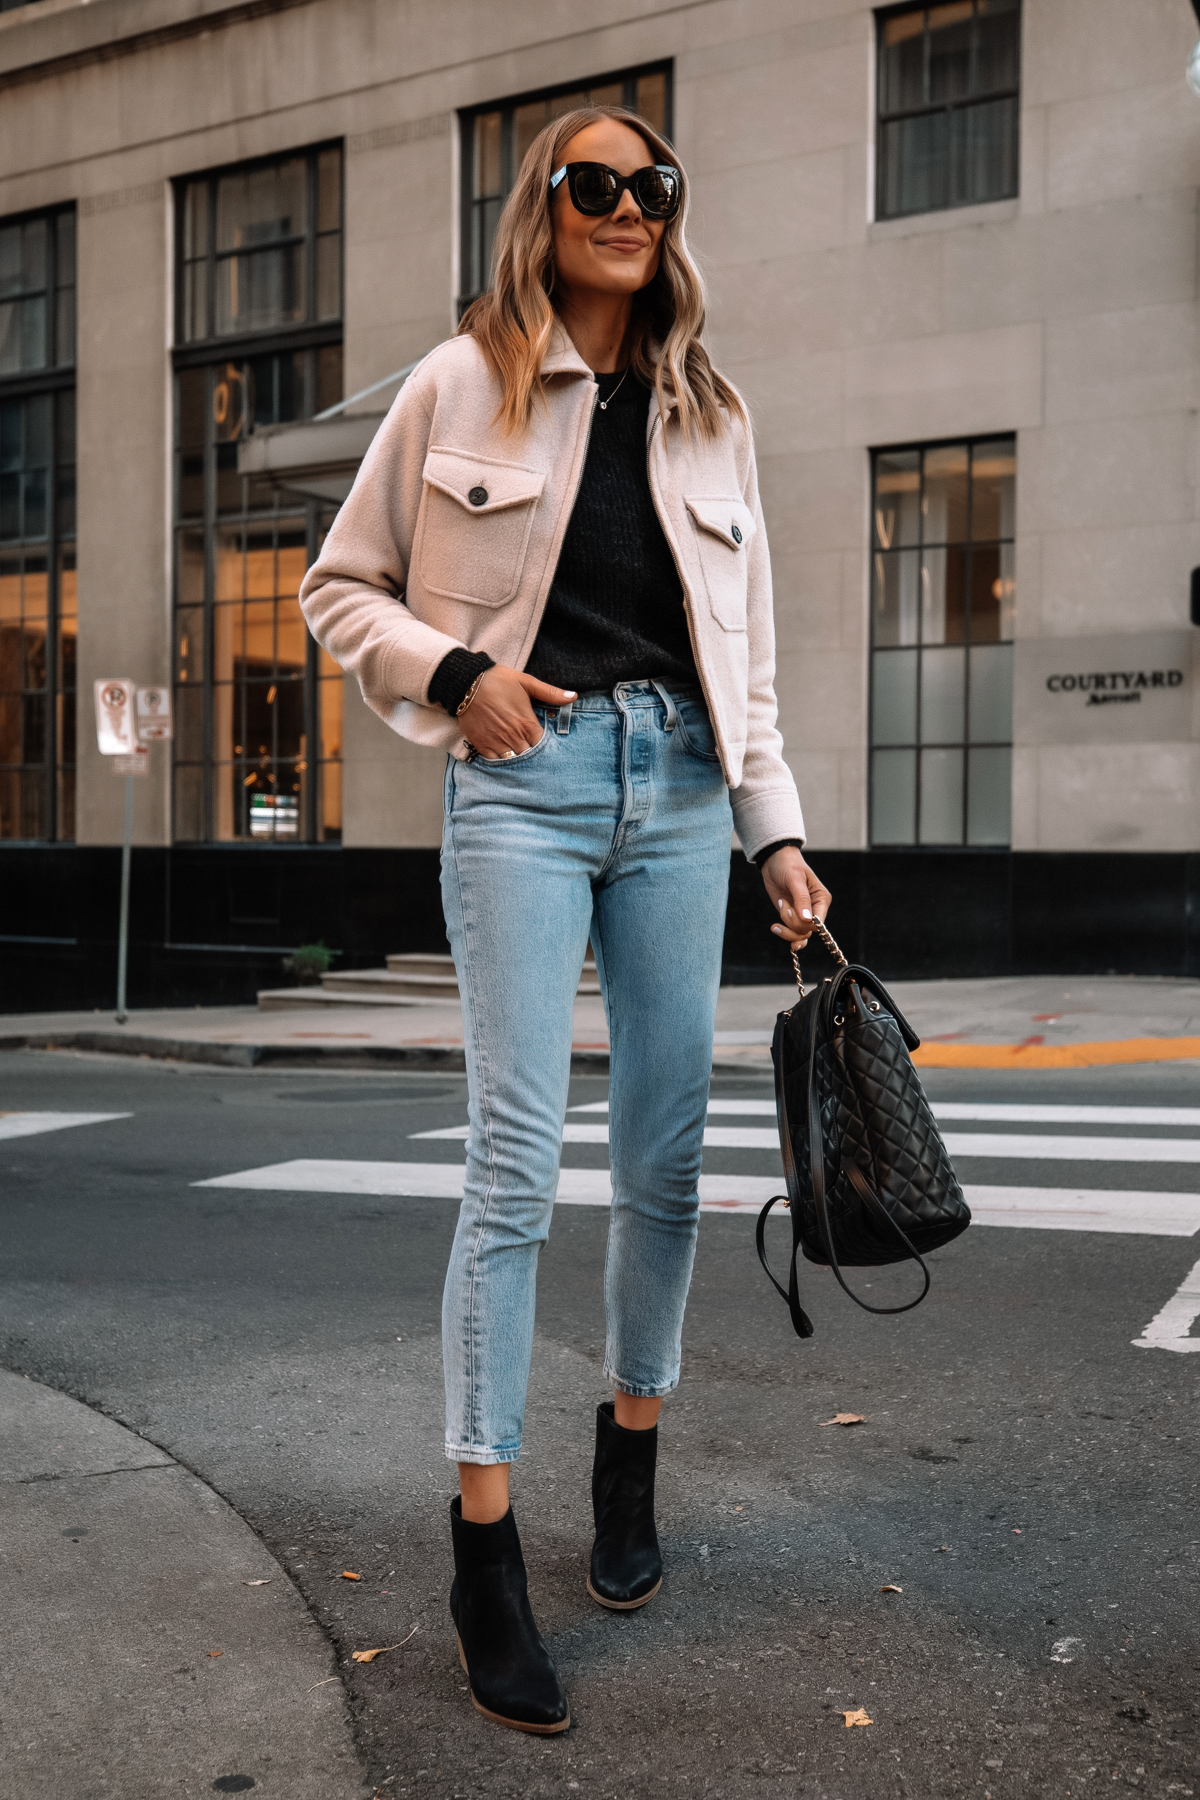 Fashion Jackson Wearing Everlane Mackinaw Jacket Black Sweater Jeans Black Booties Street Style Outfit 1